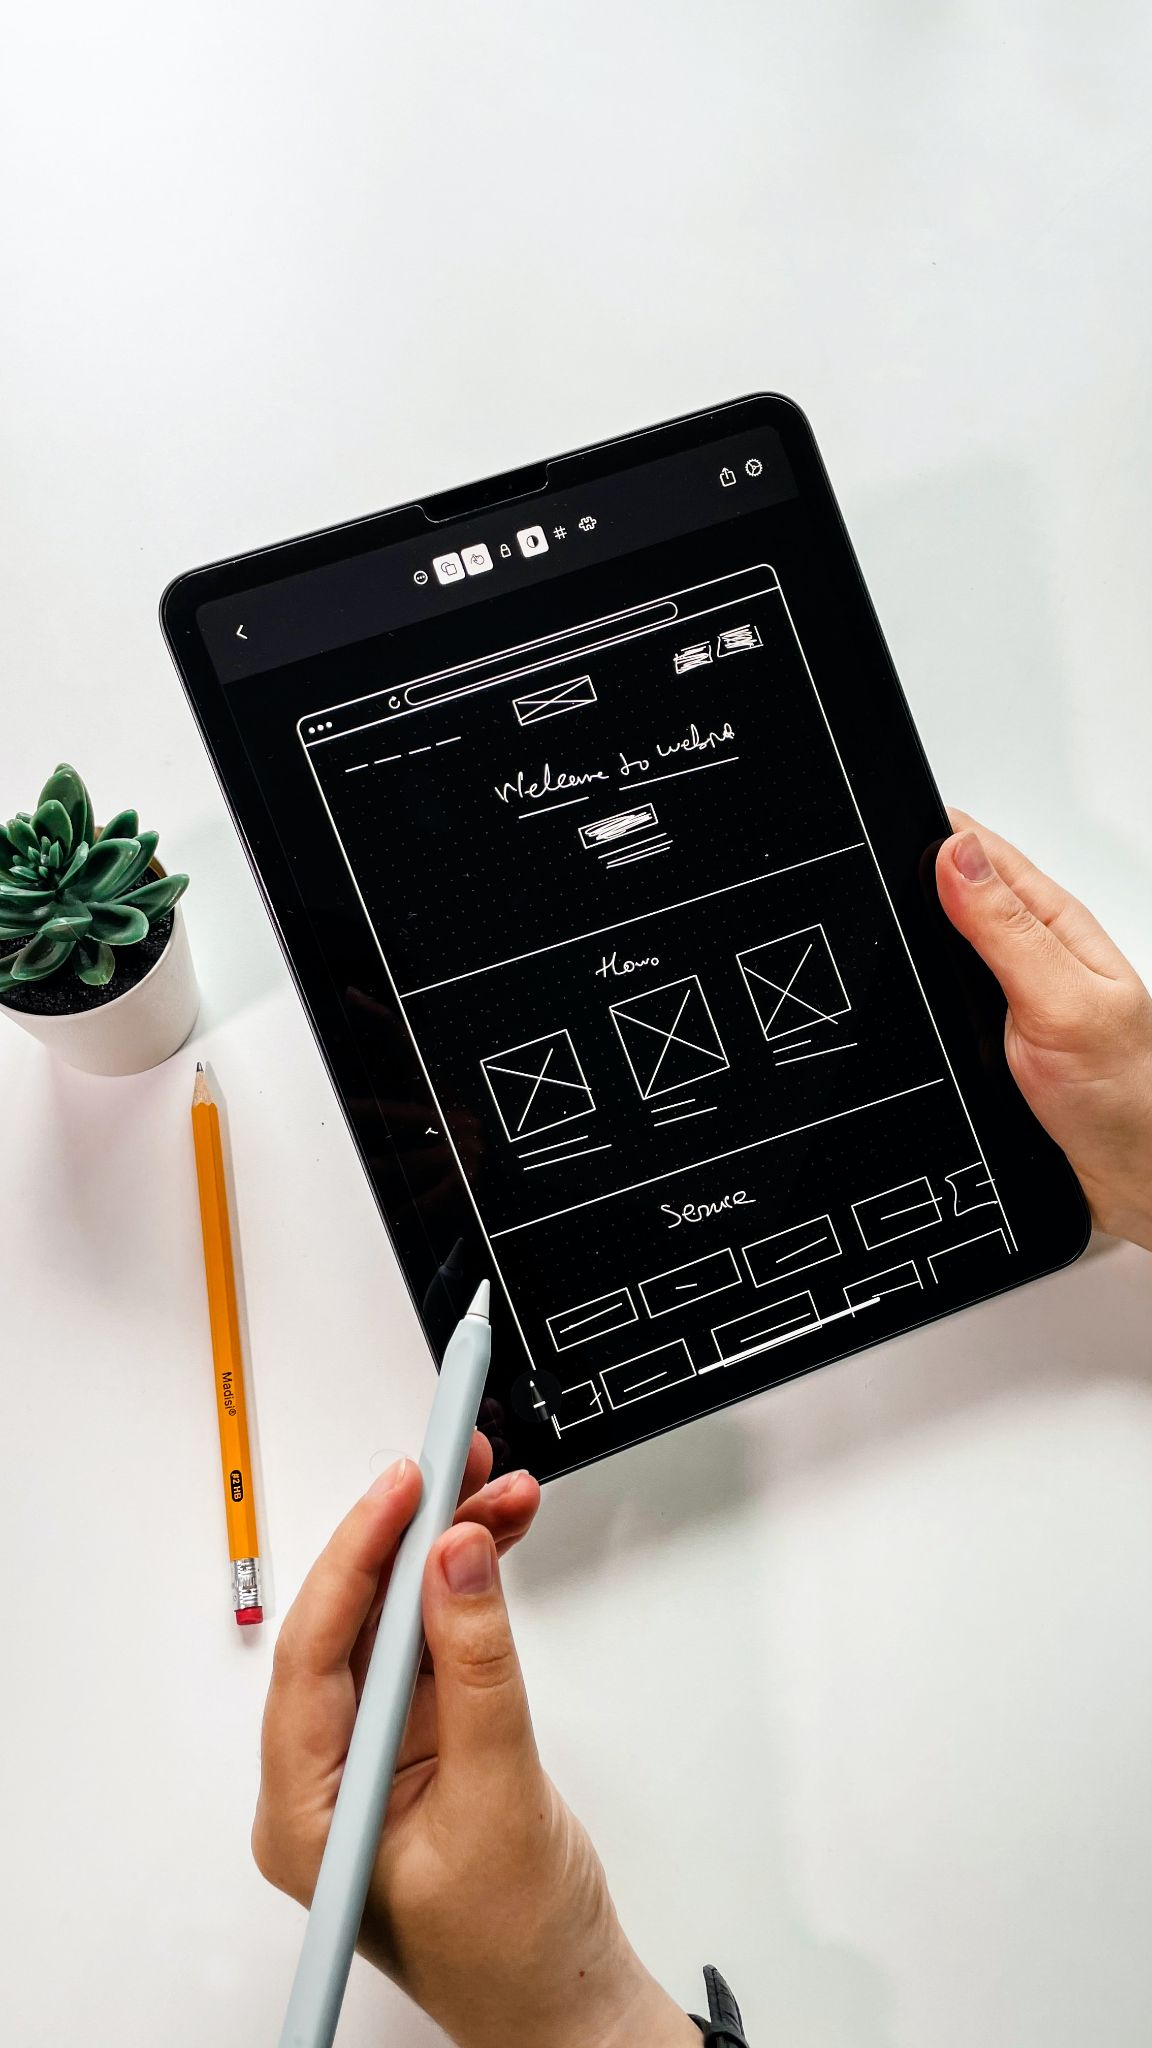 UI Design Best Practices: How to Use UI Design to Improve Your Website Pages 3